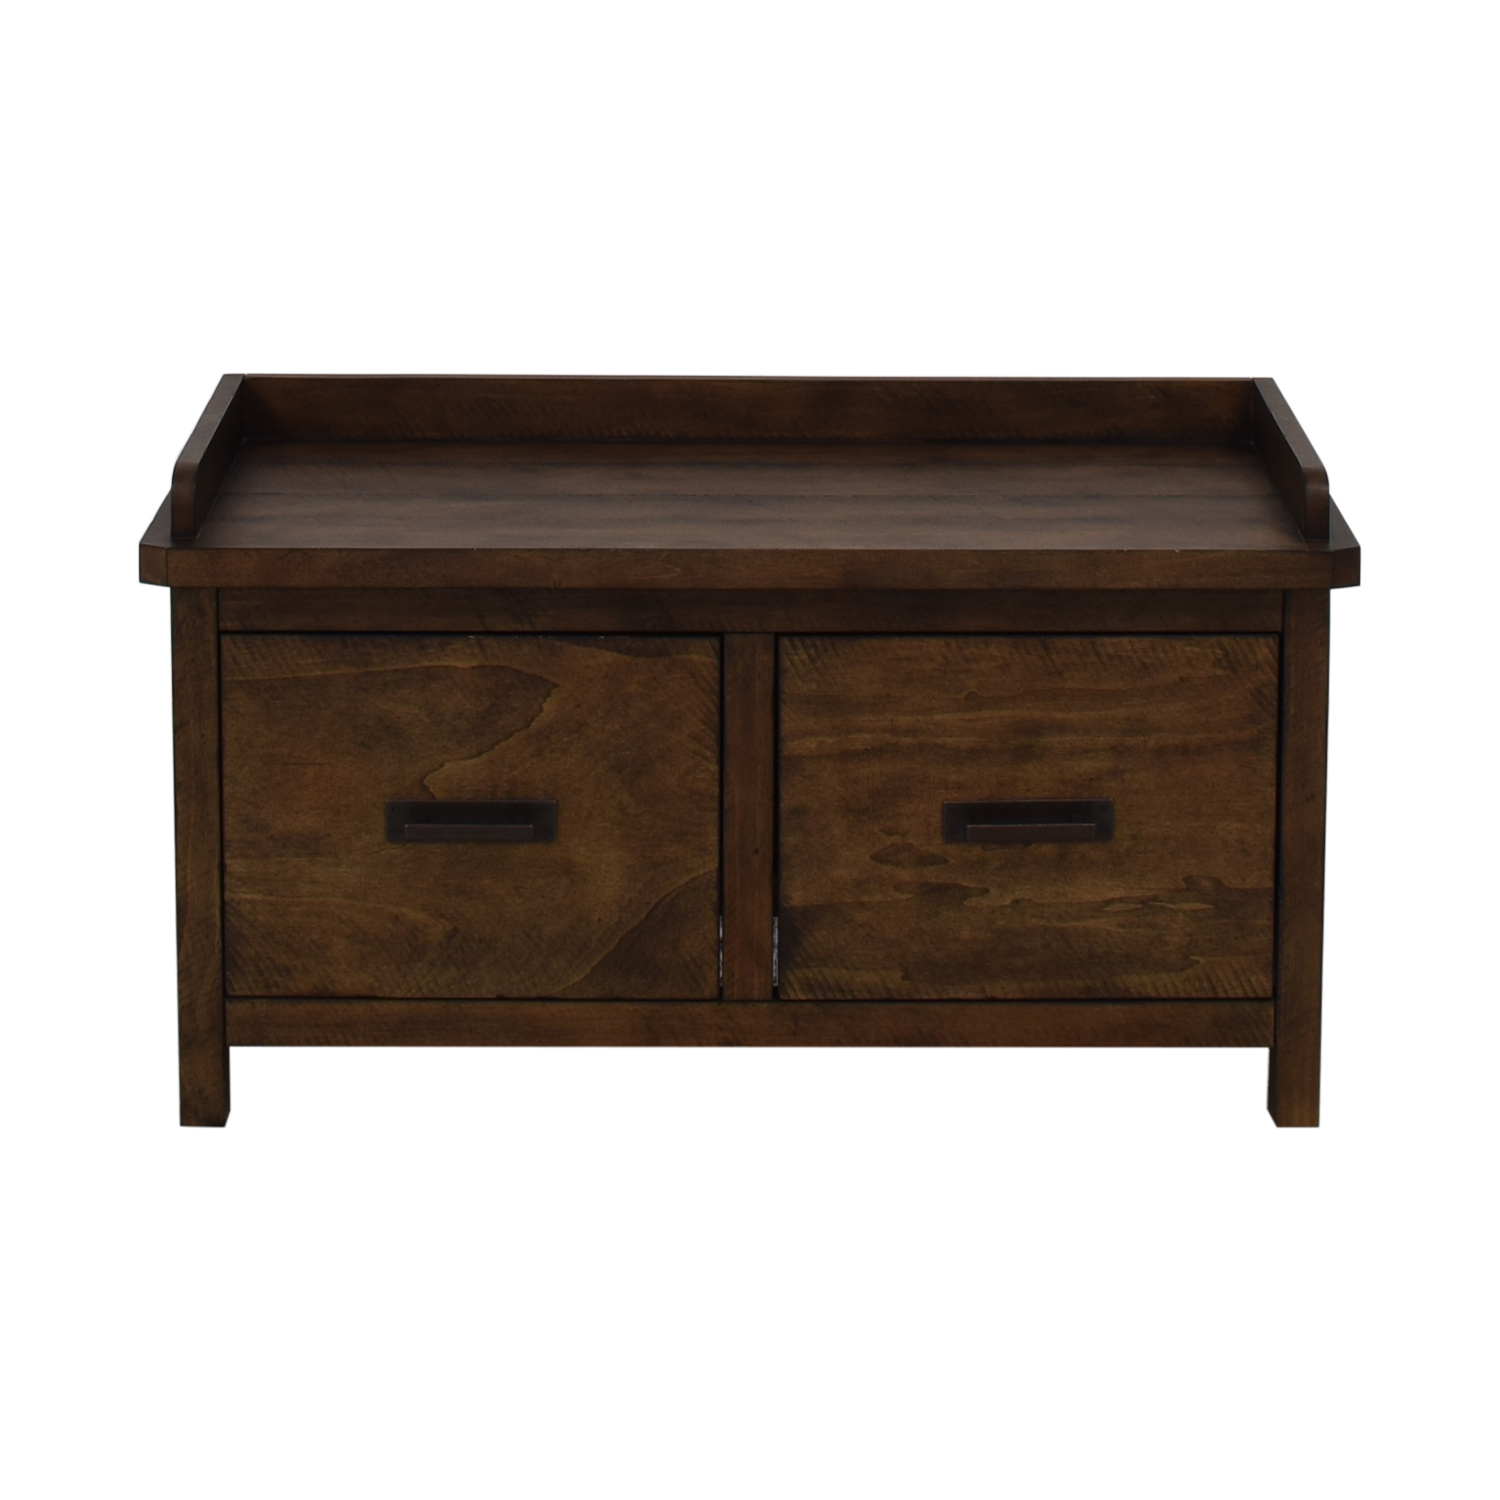 Pottery Barn Pottery Barn Matteo Entryway Storage Bench second hand